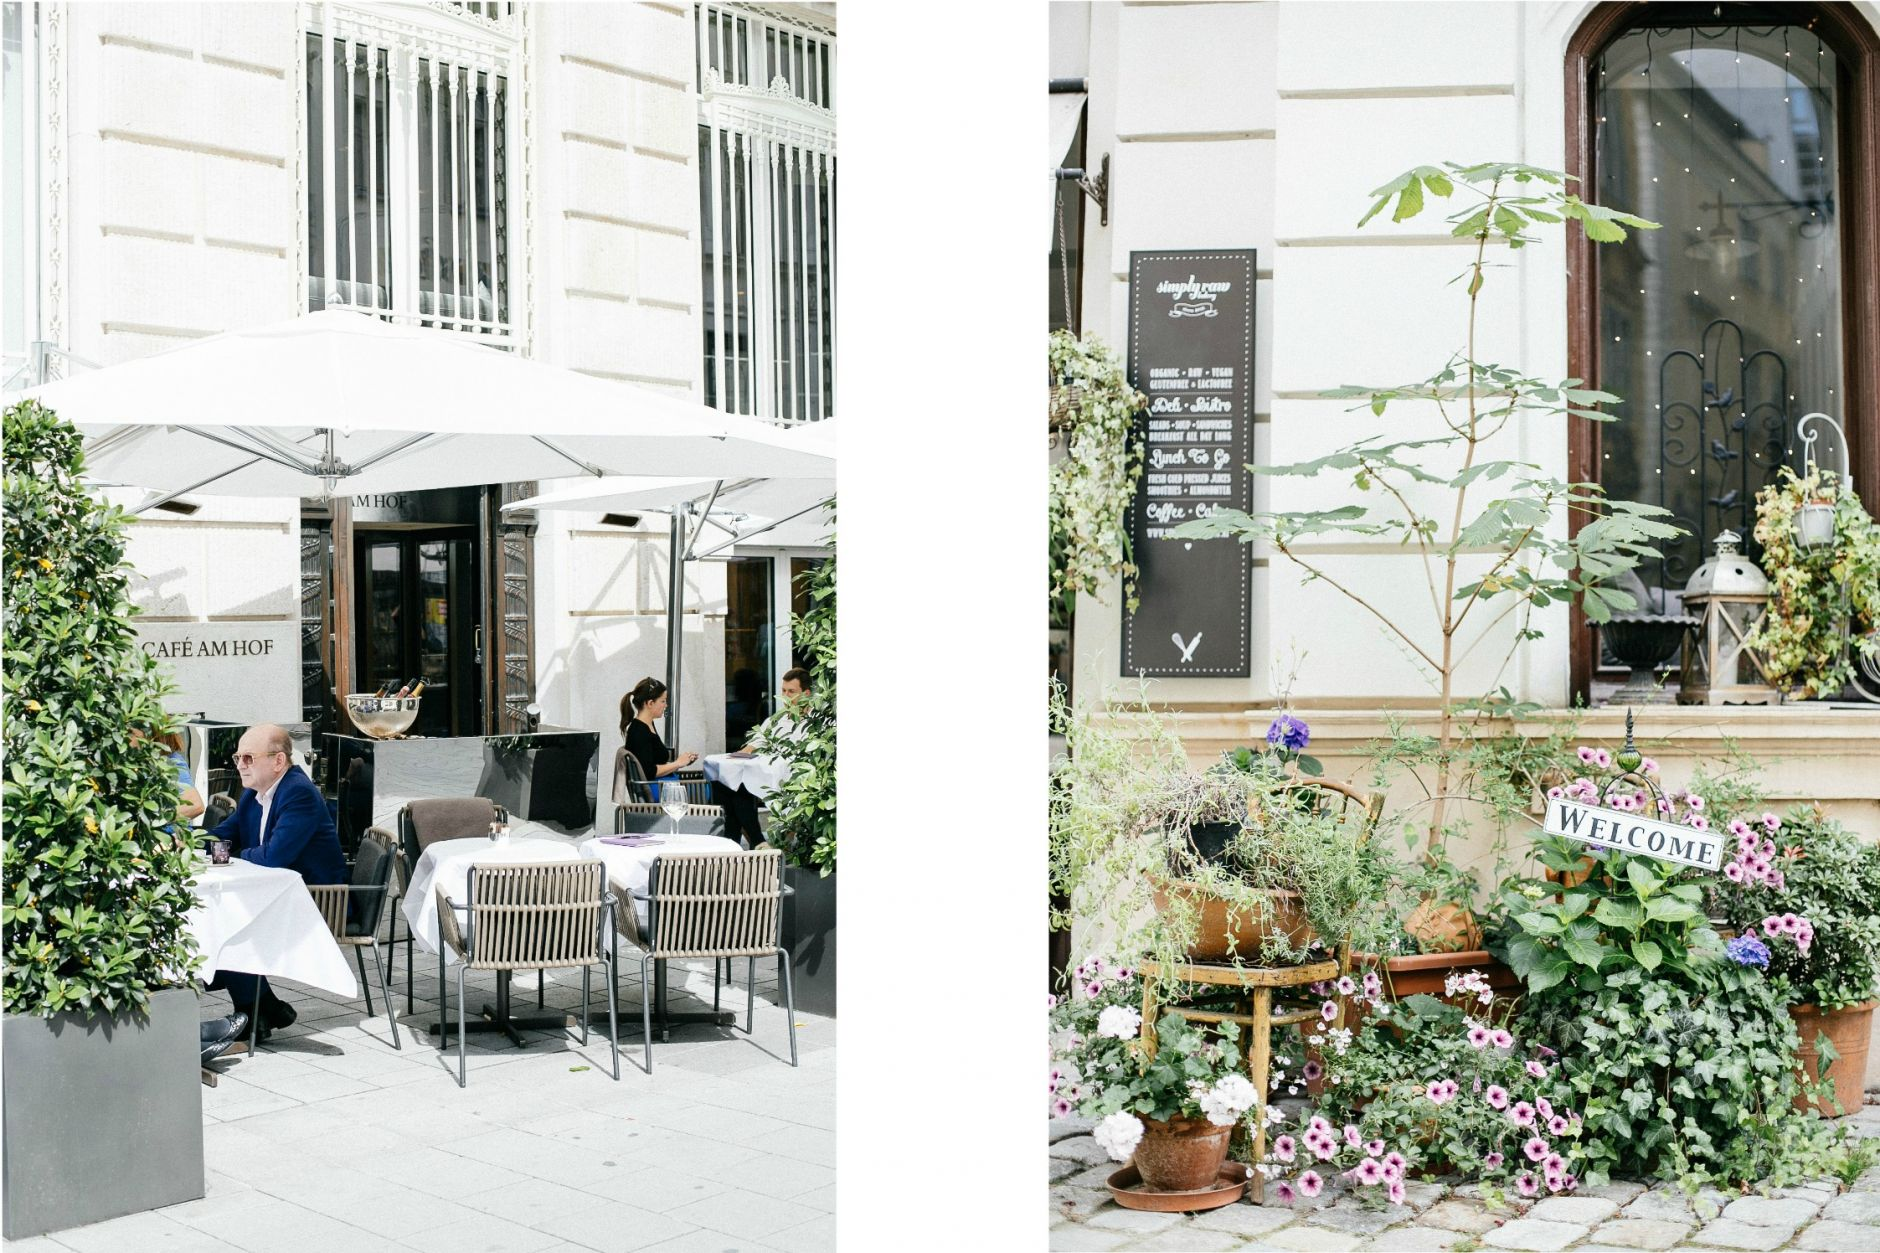 airbnb-hosting-vienna-austria-appartments-for-rent-disicouture-111